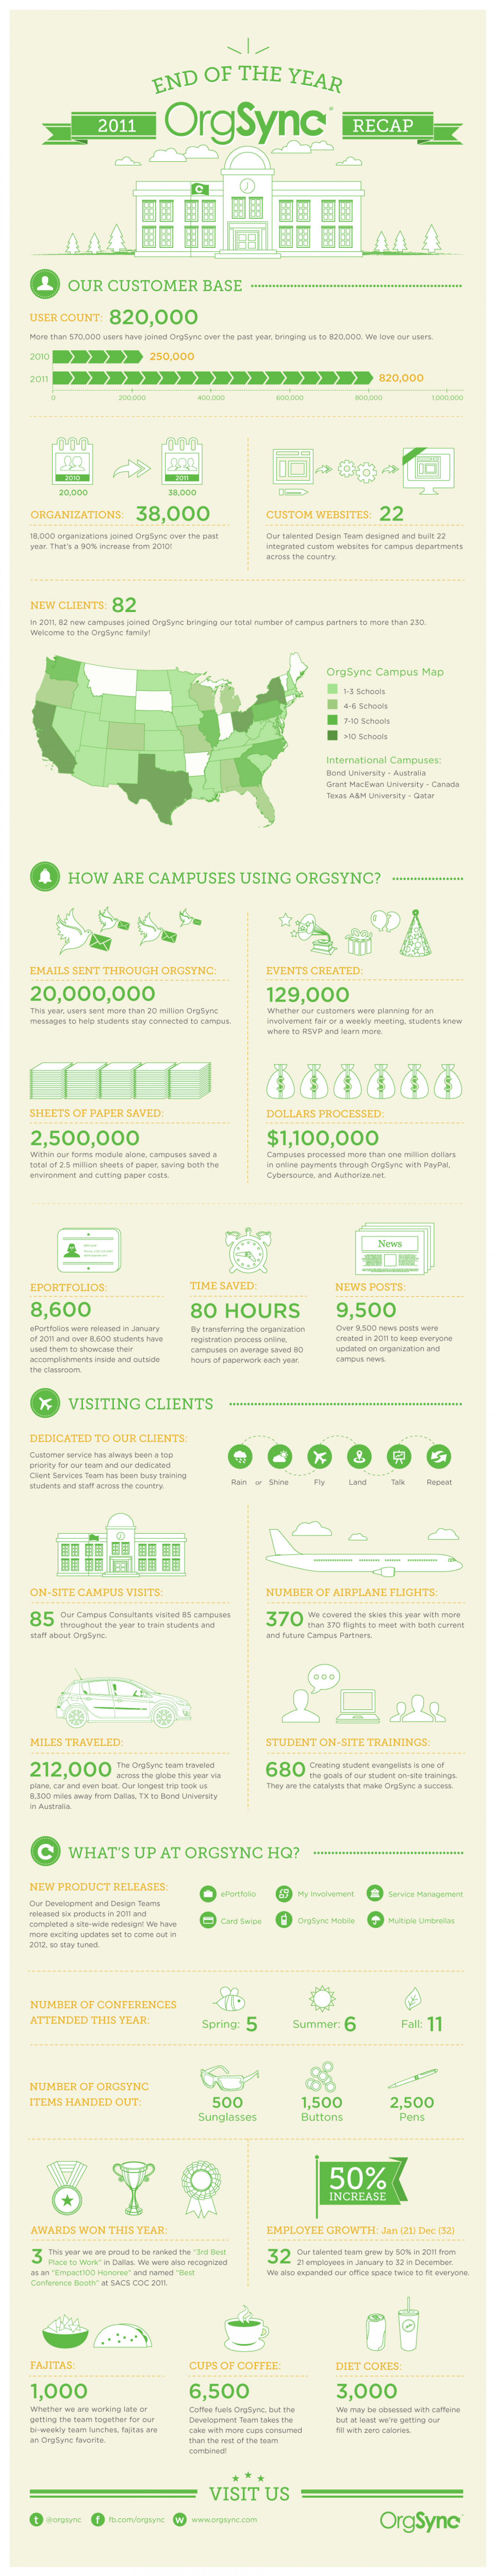 OrgSync: A Year In Review Infographic